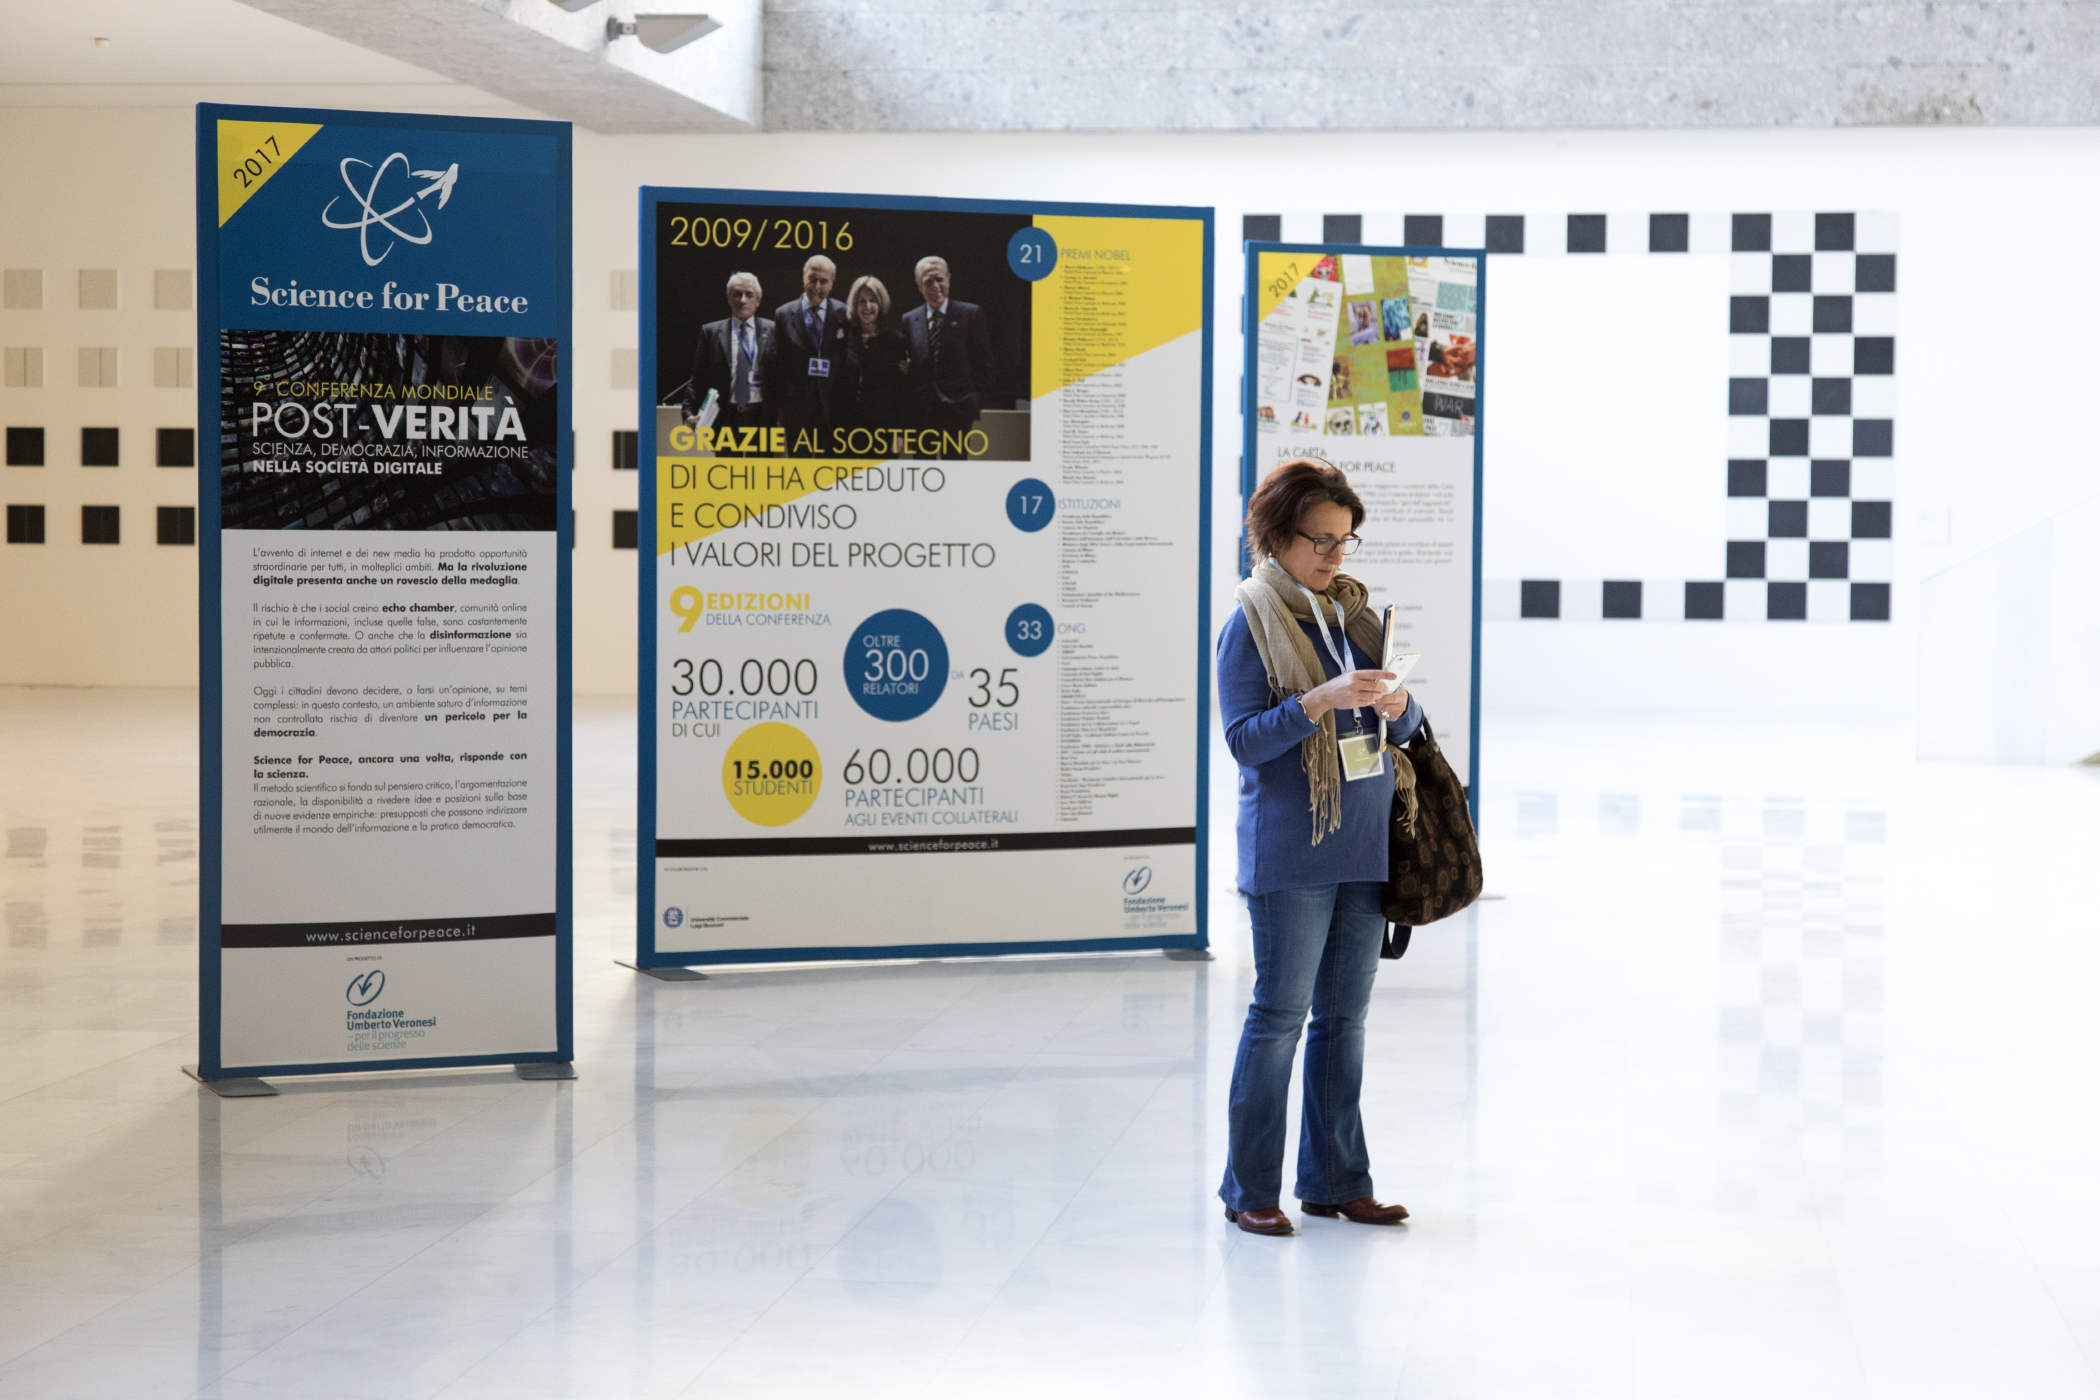 Nona edizione Science for Peace - Università Bocconi